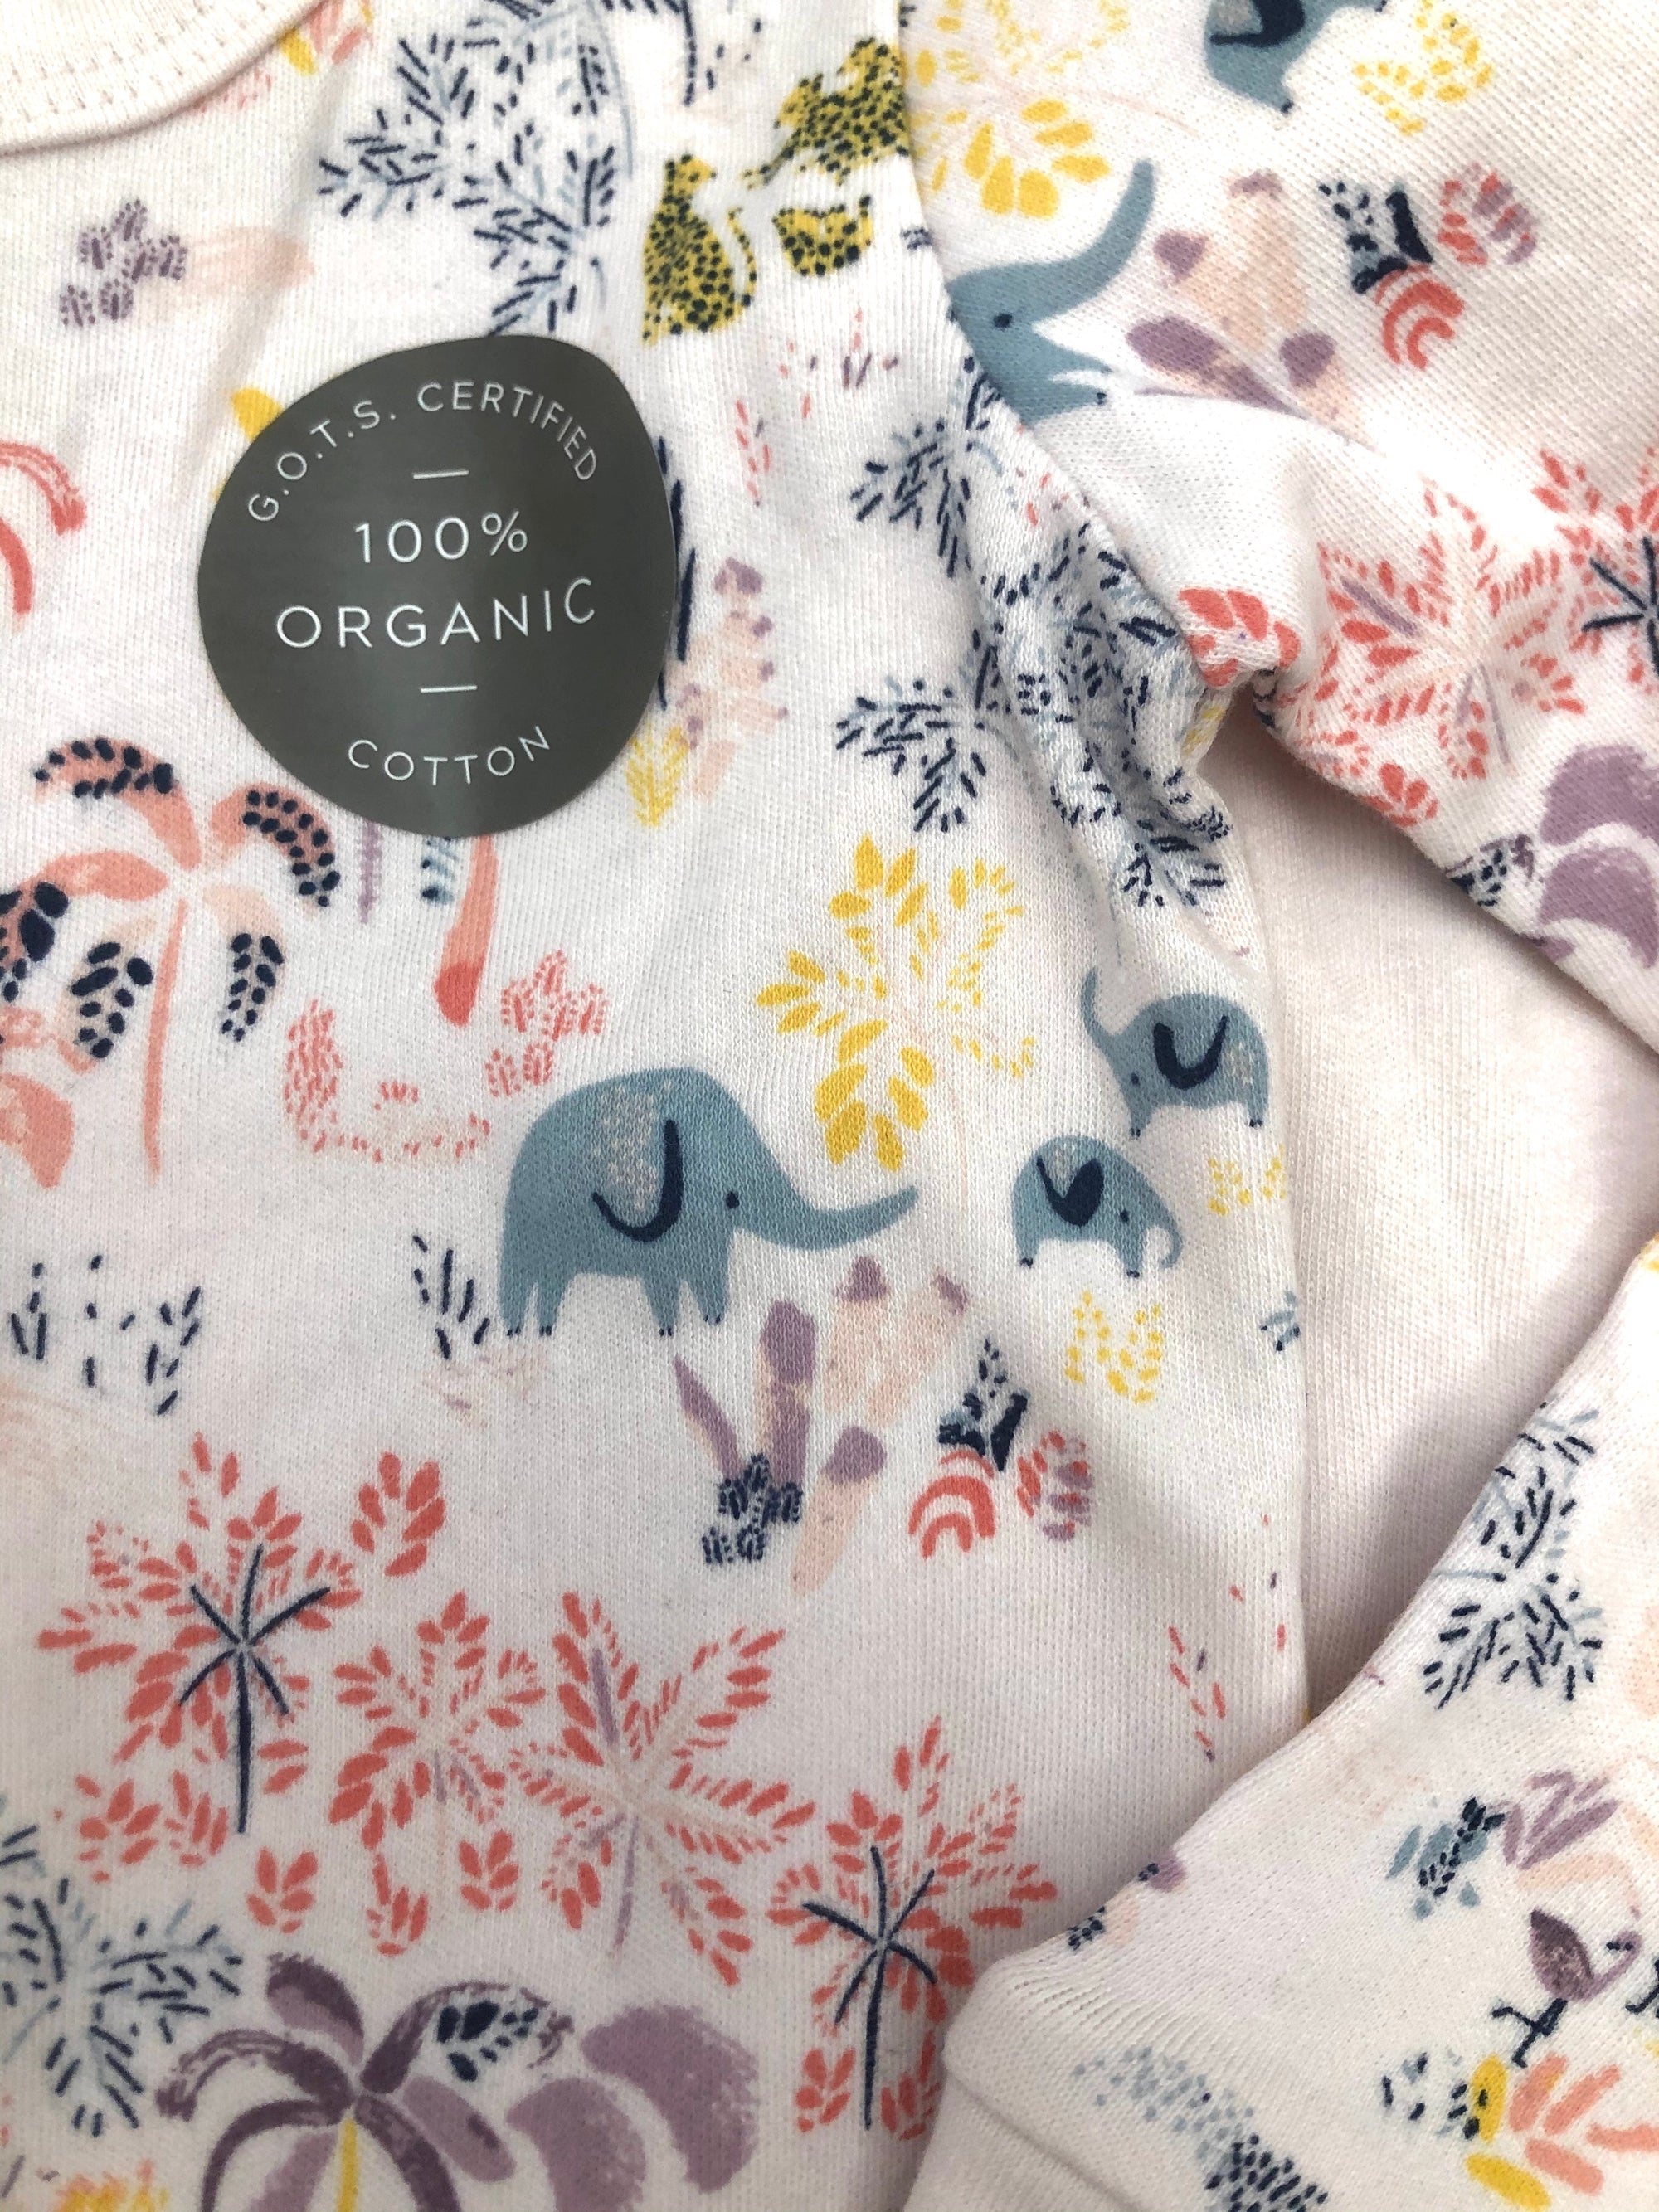 Finn + Emma 2 pc Organic Cotton Pajamas Set - Savanna